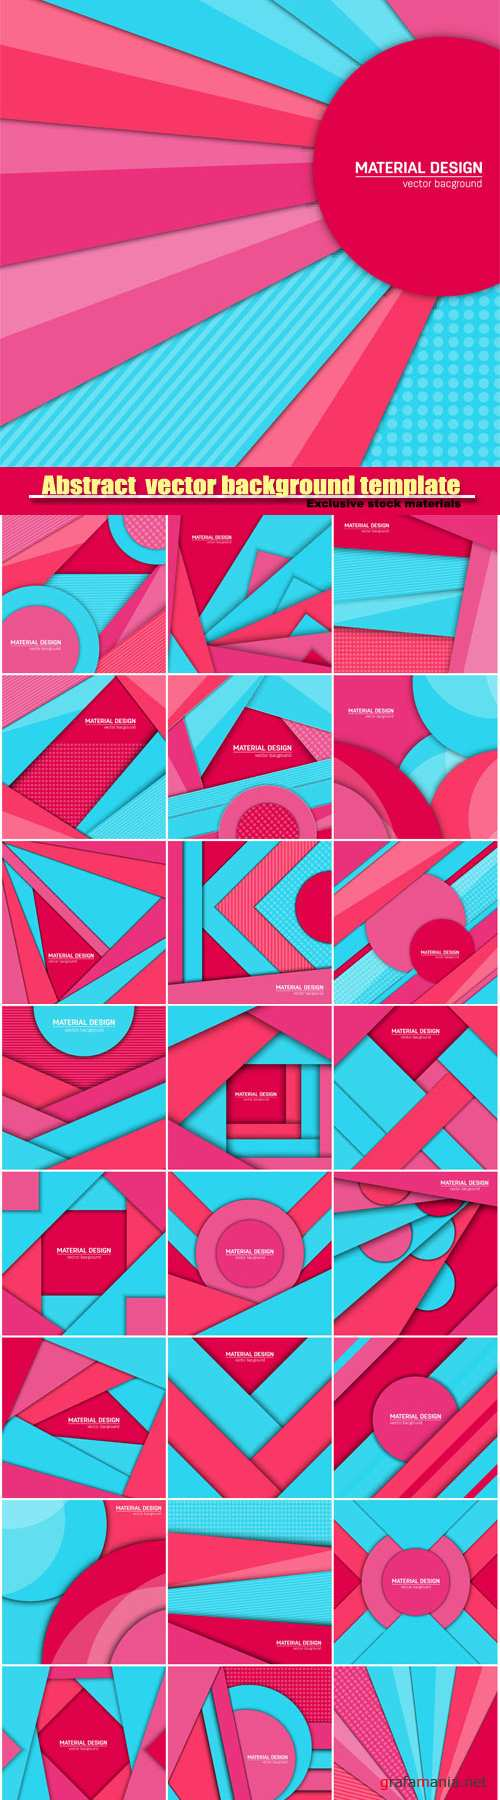 Abstract creative layout vector background template #5